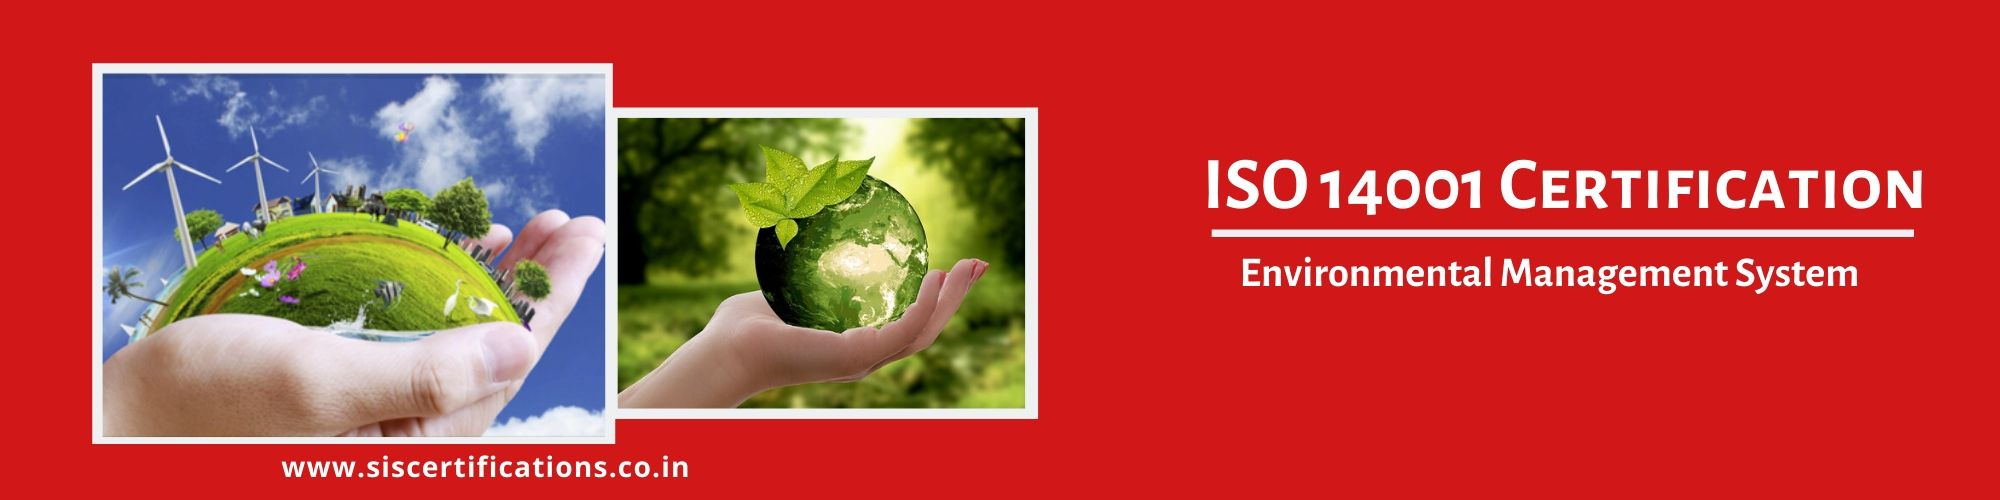 ISO 14001 Certification, ISO 14001 Certification